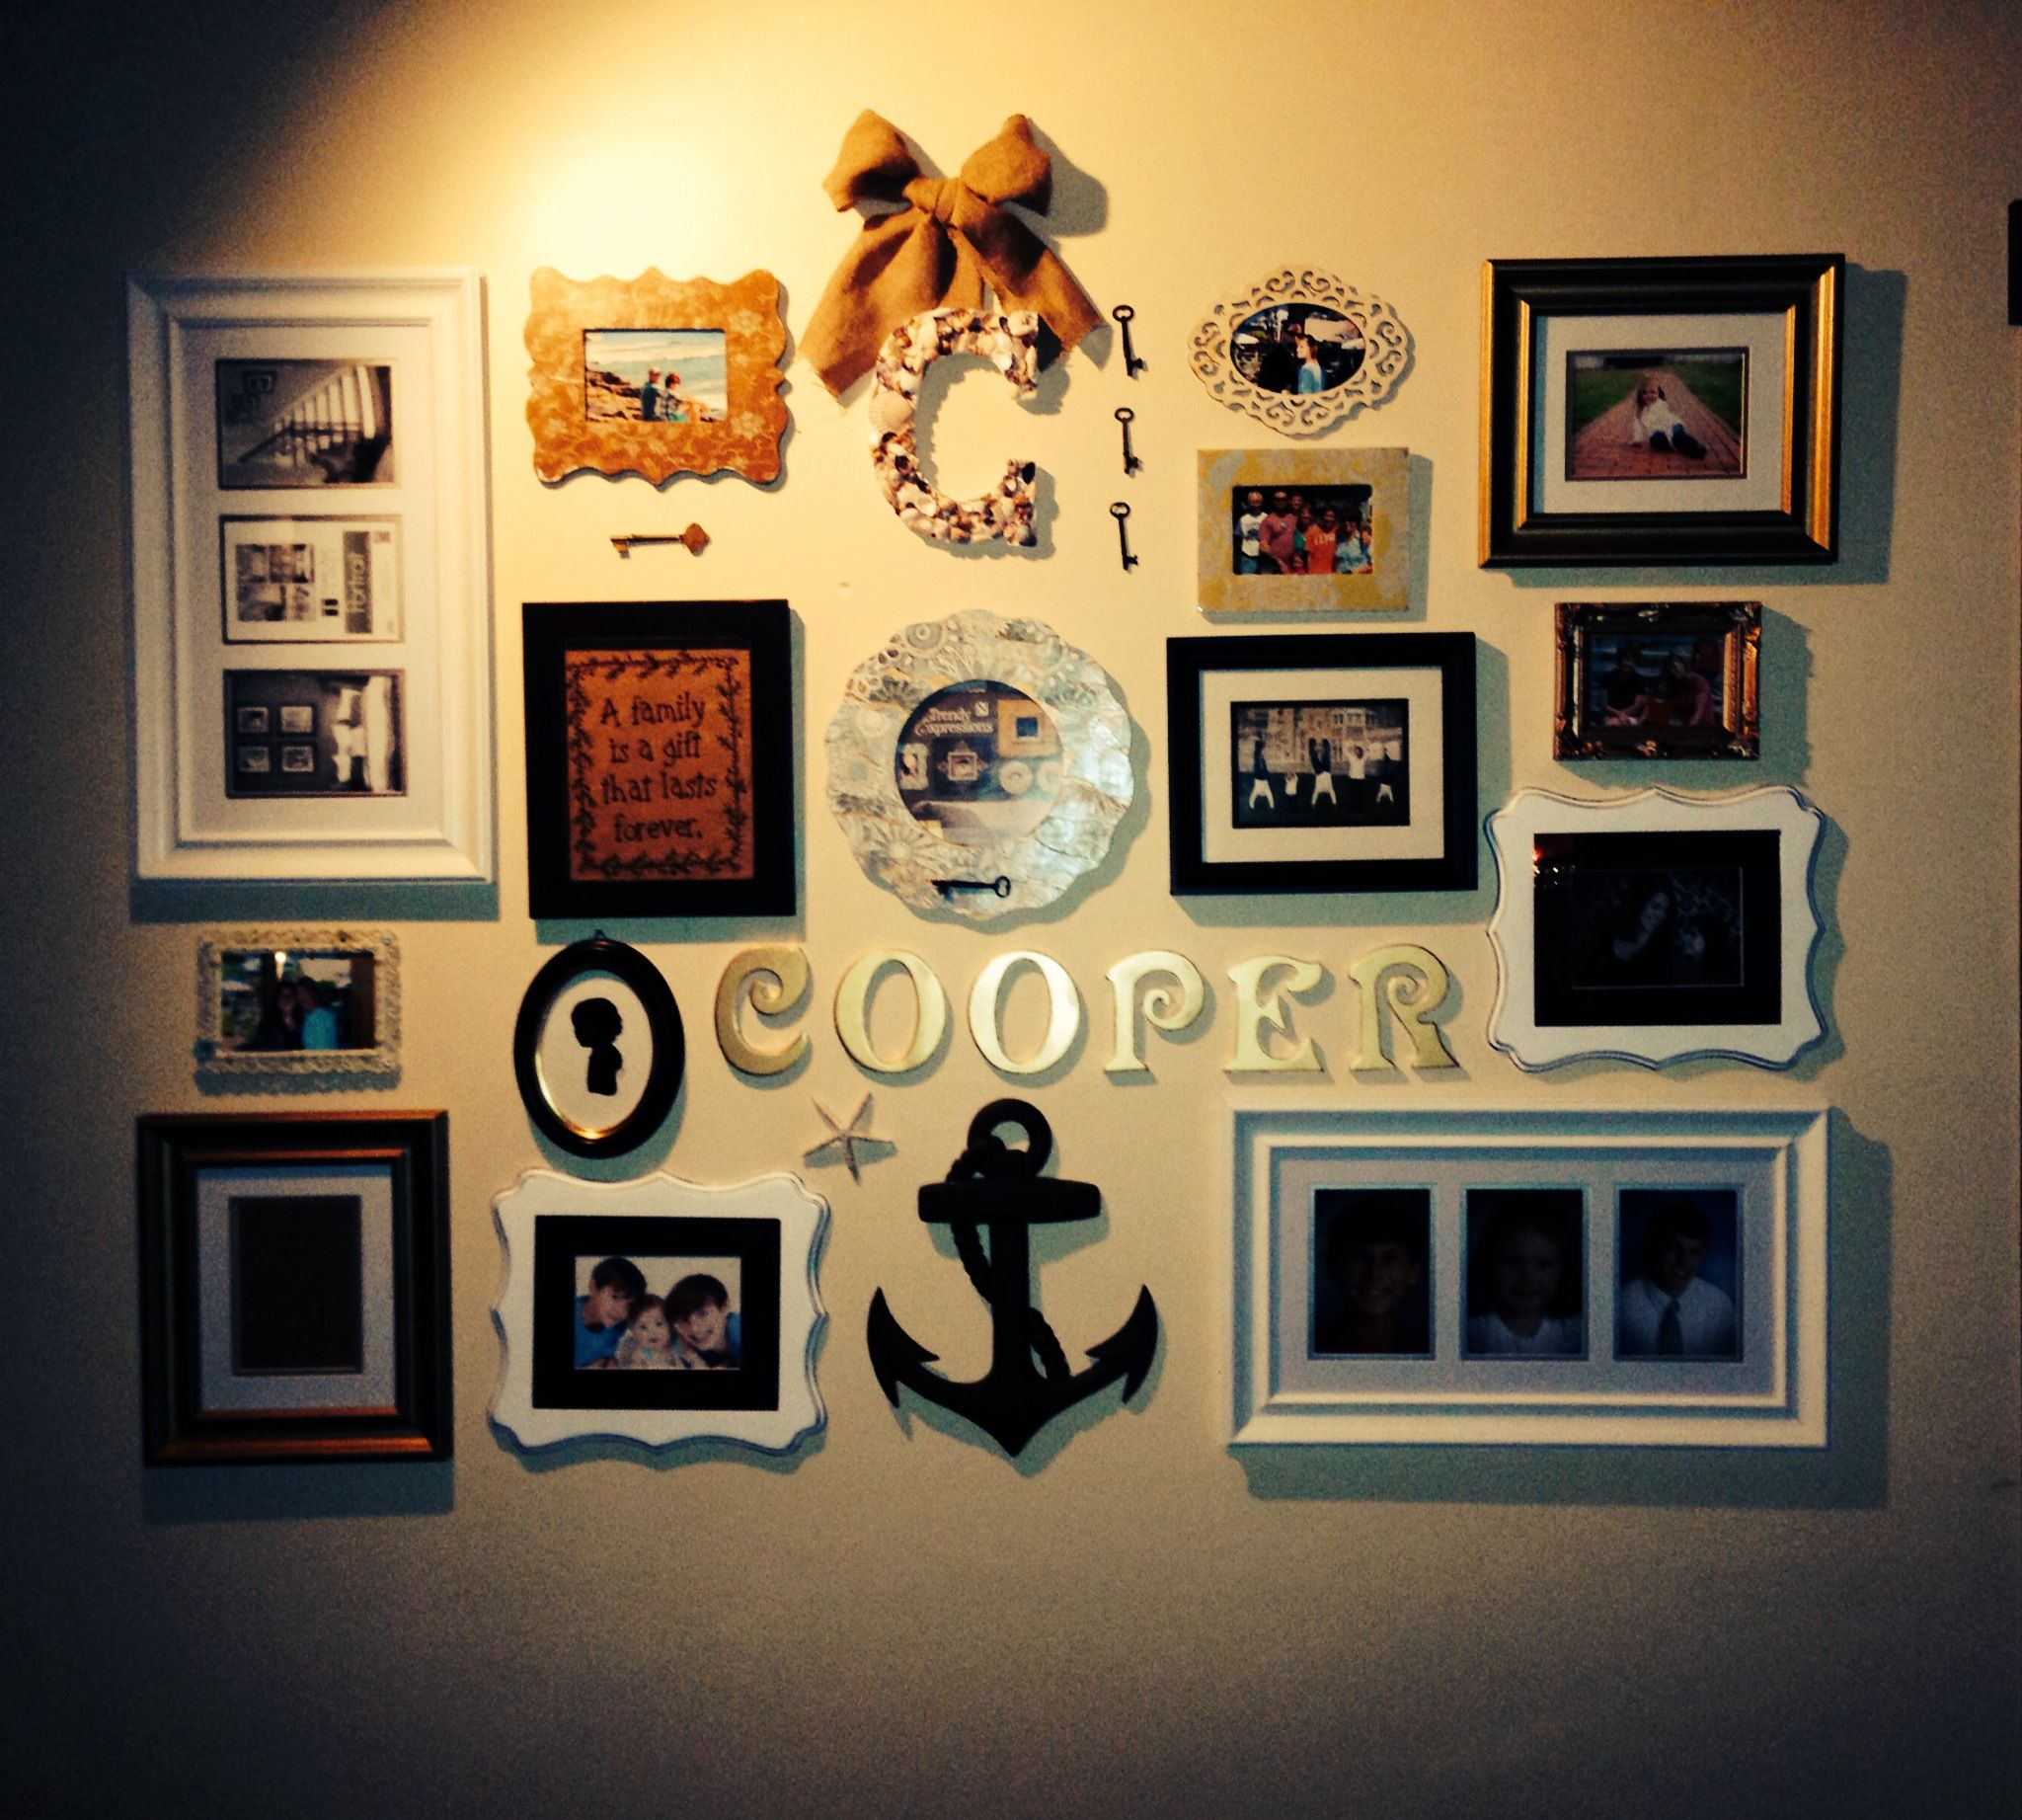 New family photo wall | Decorating | Pinterest | Photo wall, Walls ...